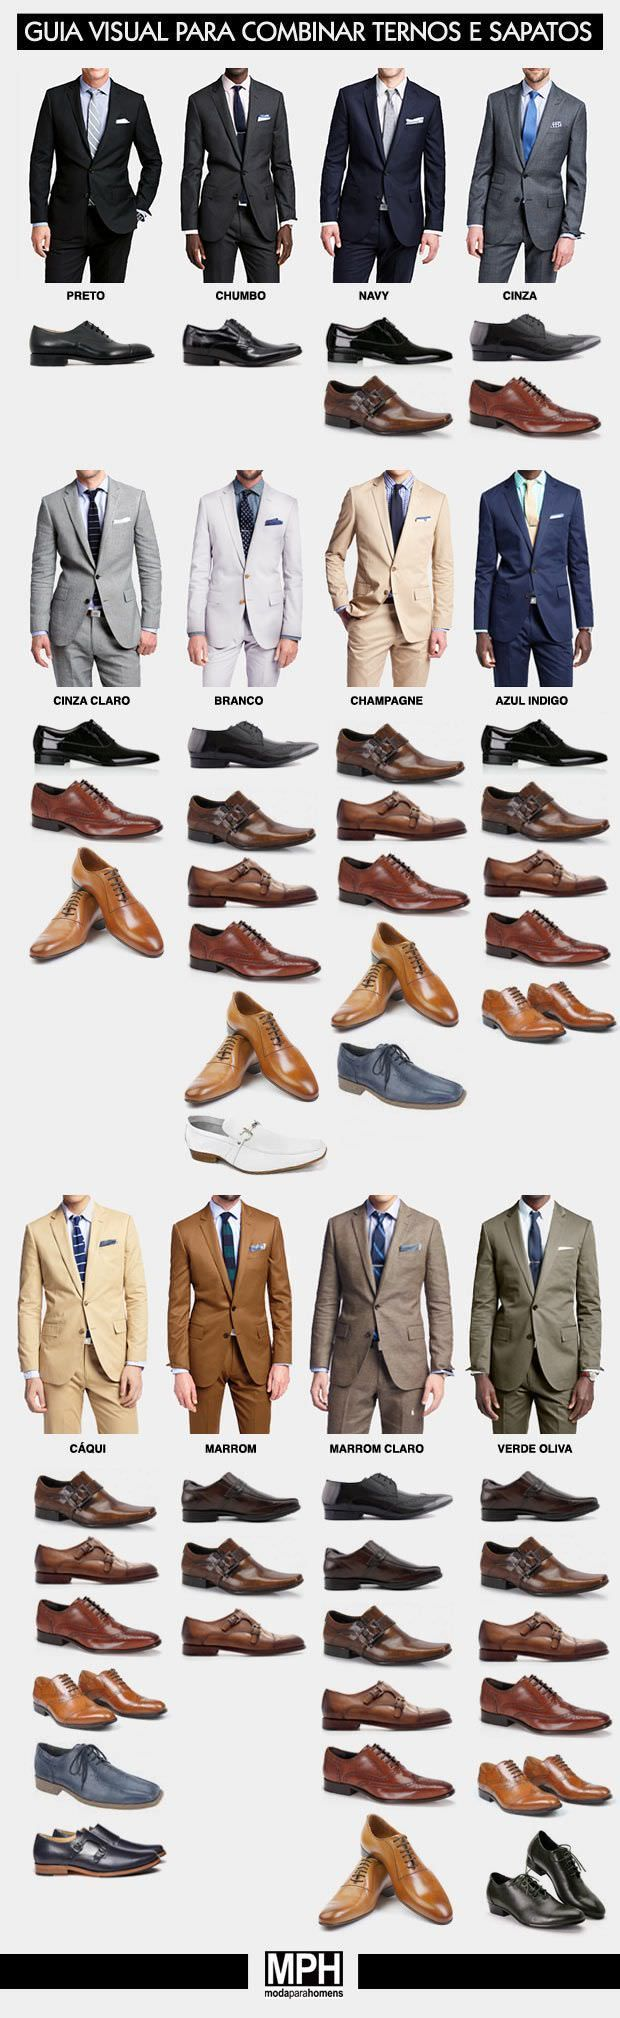 Visual Guide to matching Suits and Shoes     #StyleGuide, #Shoes, #Suits…